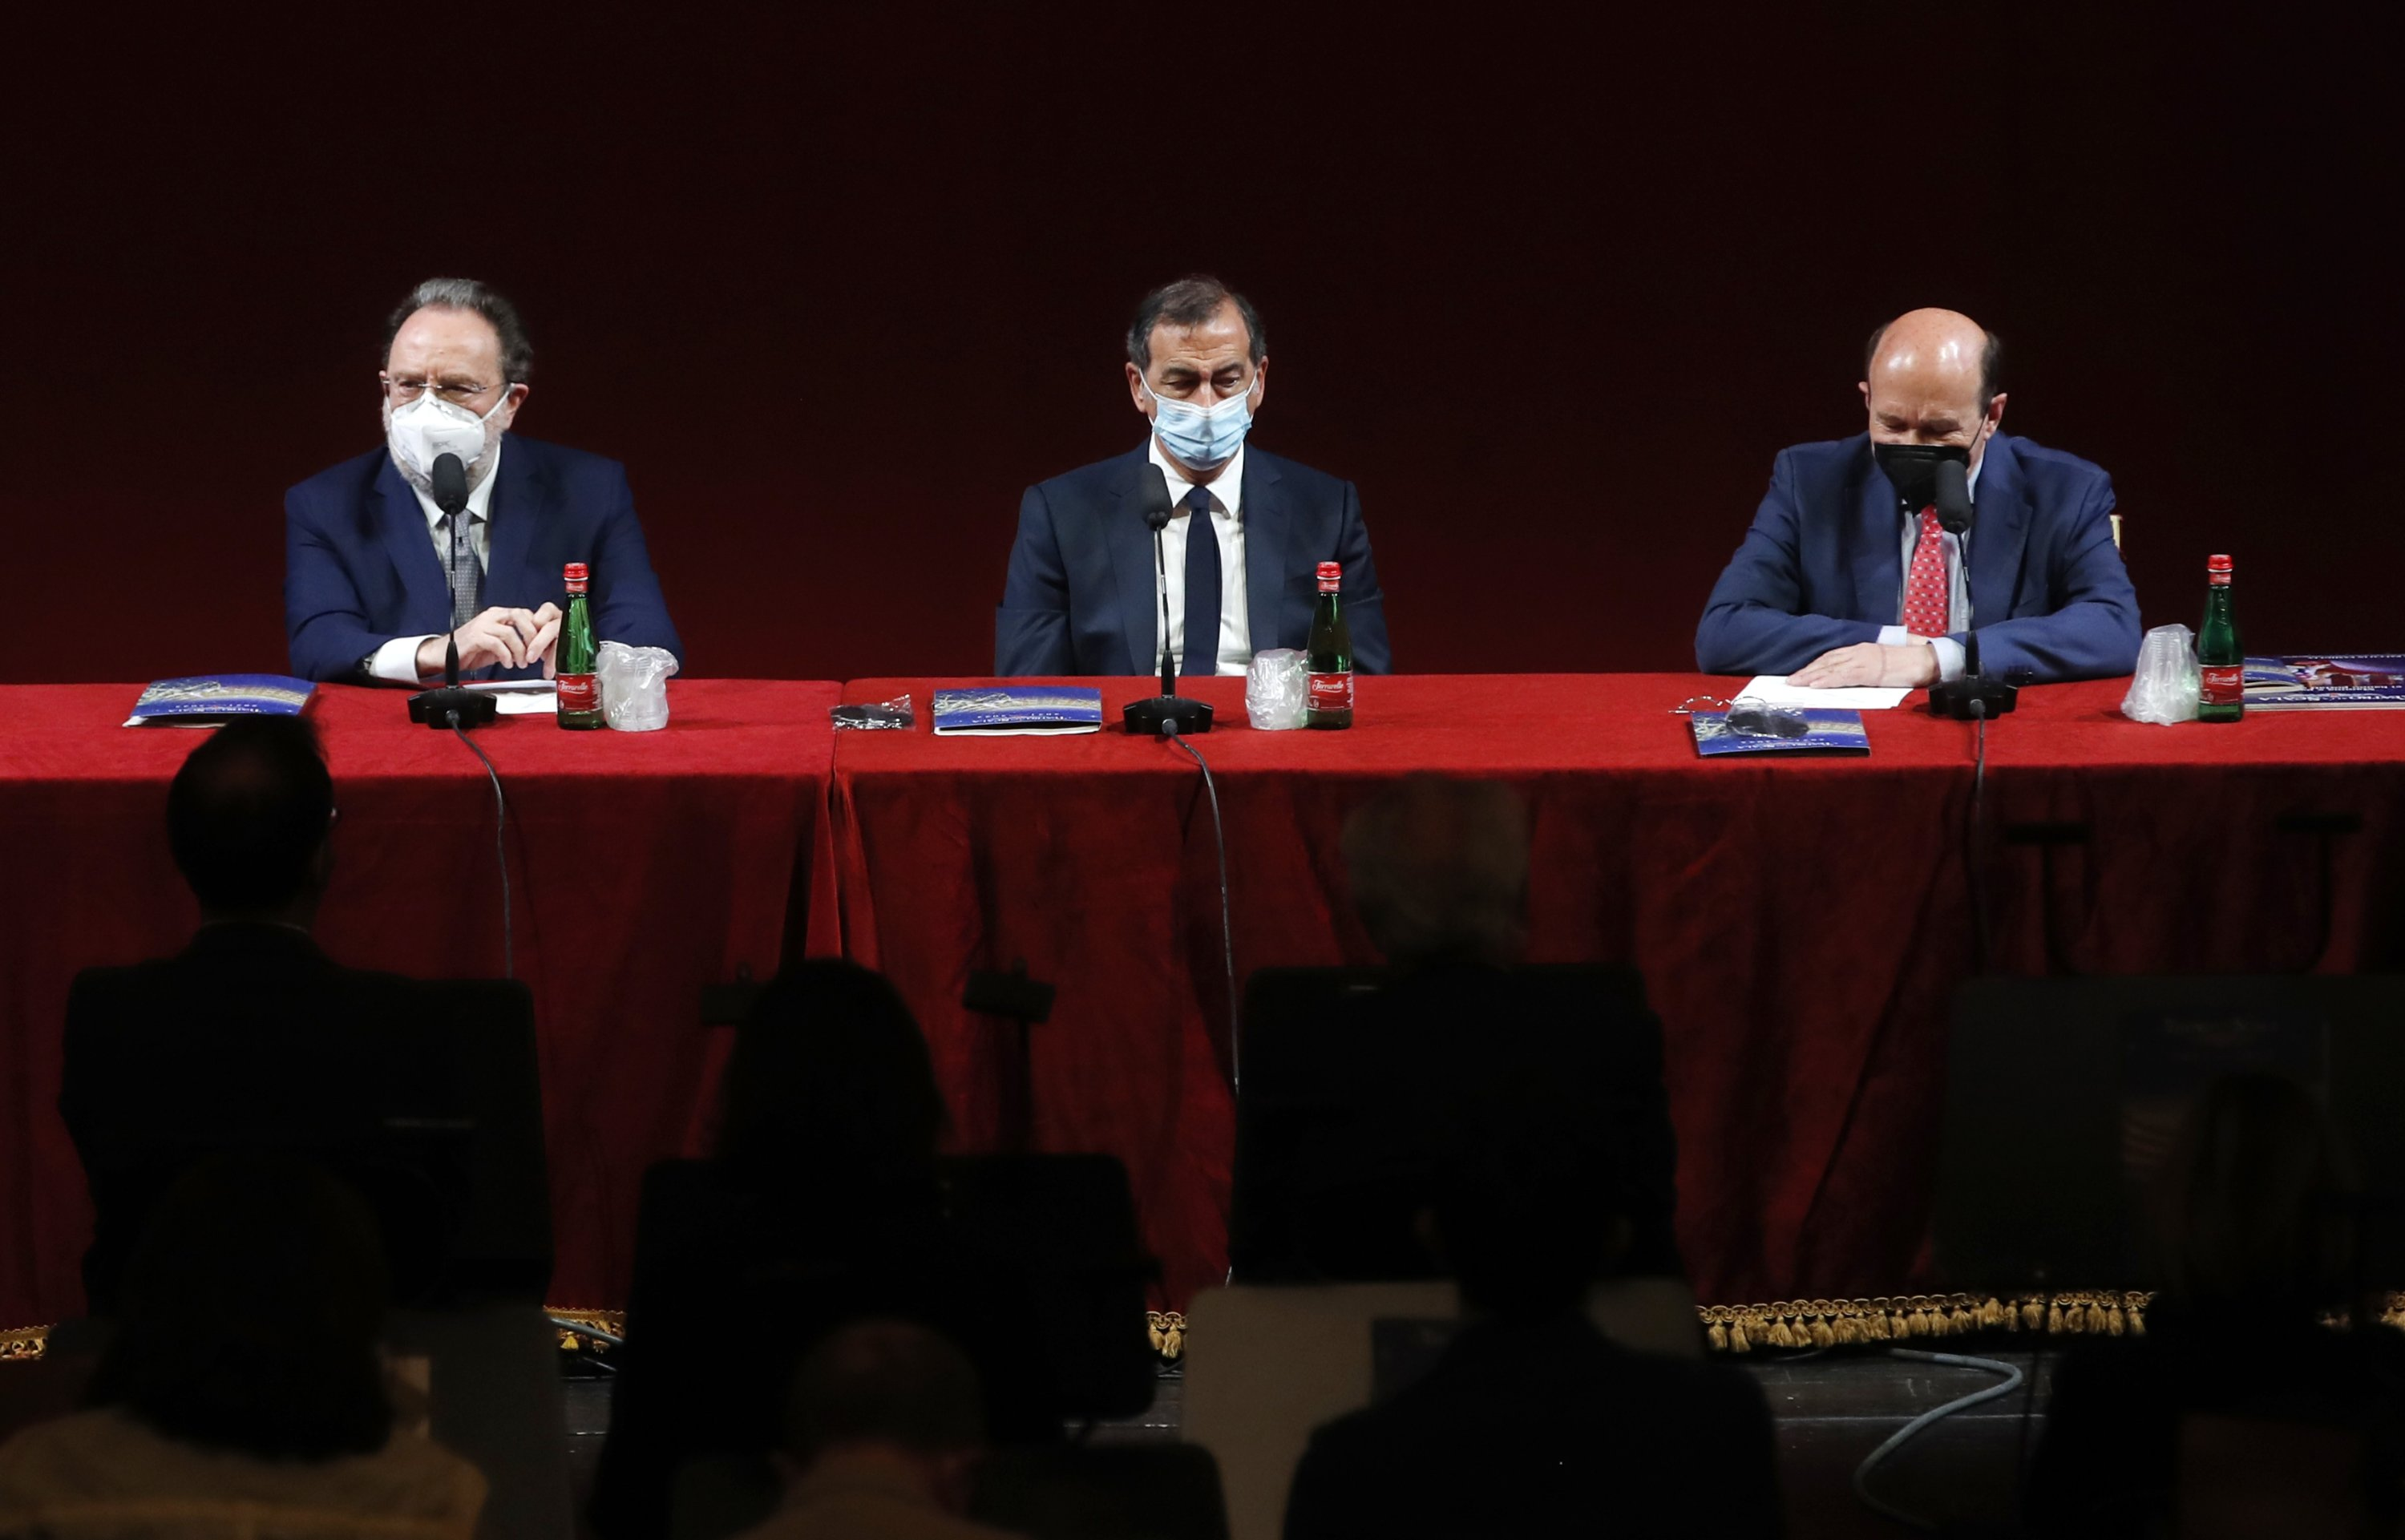 Italian conductor Riccardo Chailly (L), Milan's Mayor Giuseppe Sala (C) and La Scala opera house general manager Dominique Meyer attend a press conference to present the 2021/2022 season, at the Milan La Scala opera house, Italy, May 31, 2021. (AP Photo)